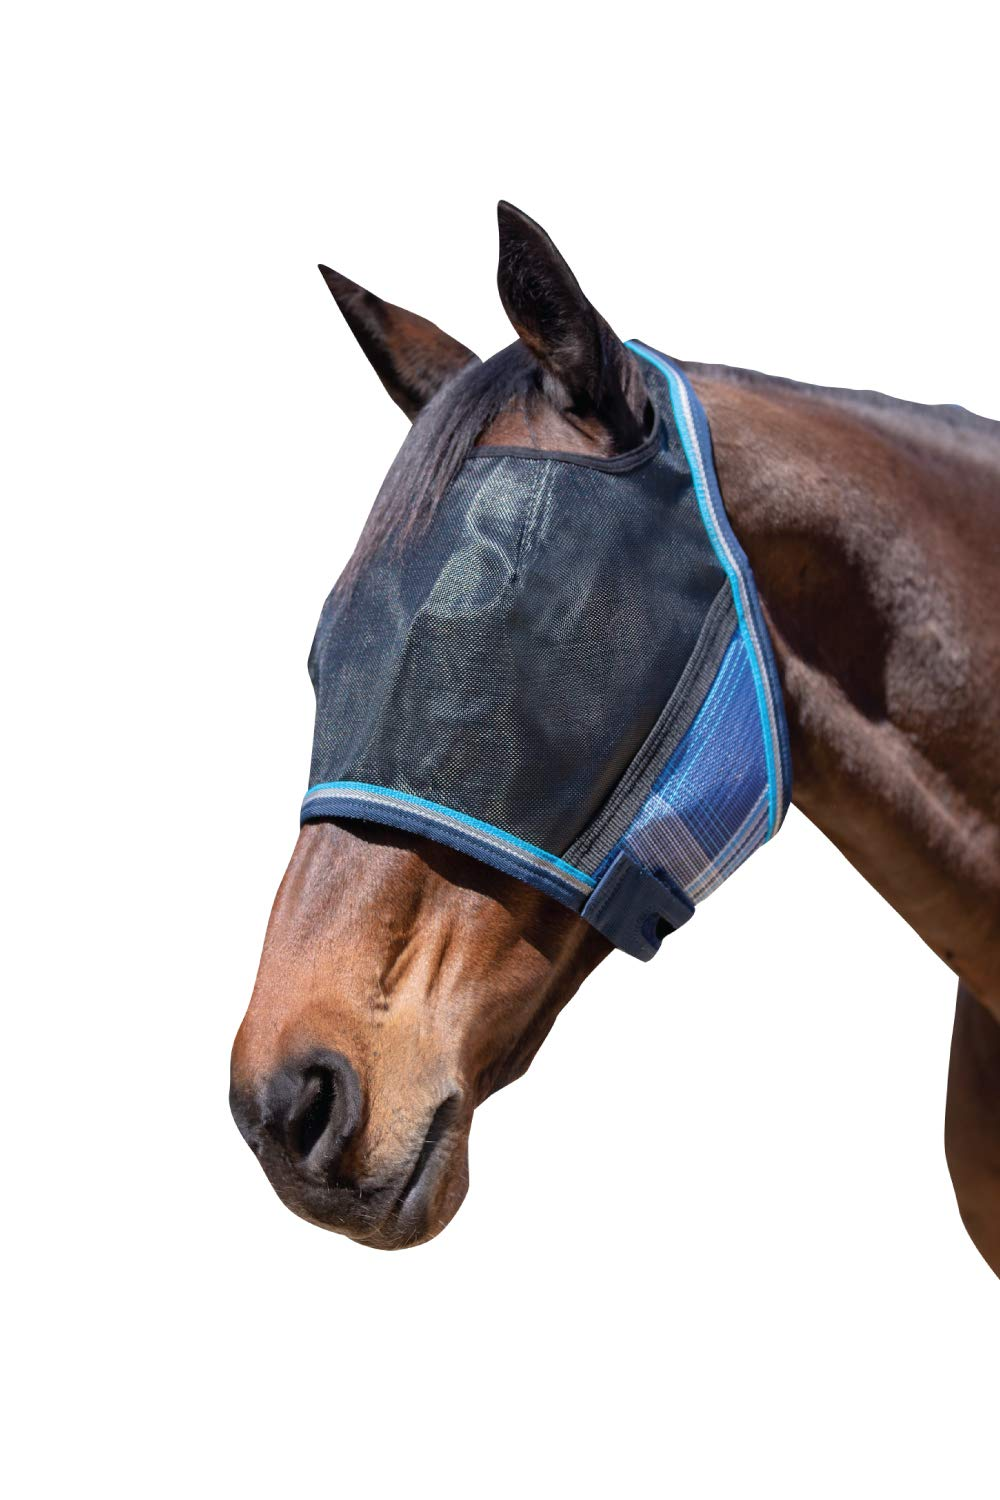 Kensington UViator Protective Fly Mask - Newest UV Solar Screen Protection with a 90% UV Rating - Double Locking CatchMask Fasteners - Non Heat Transferring Fabric (Kentucky Blue, Large)